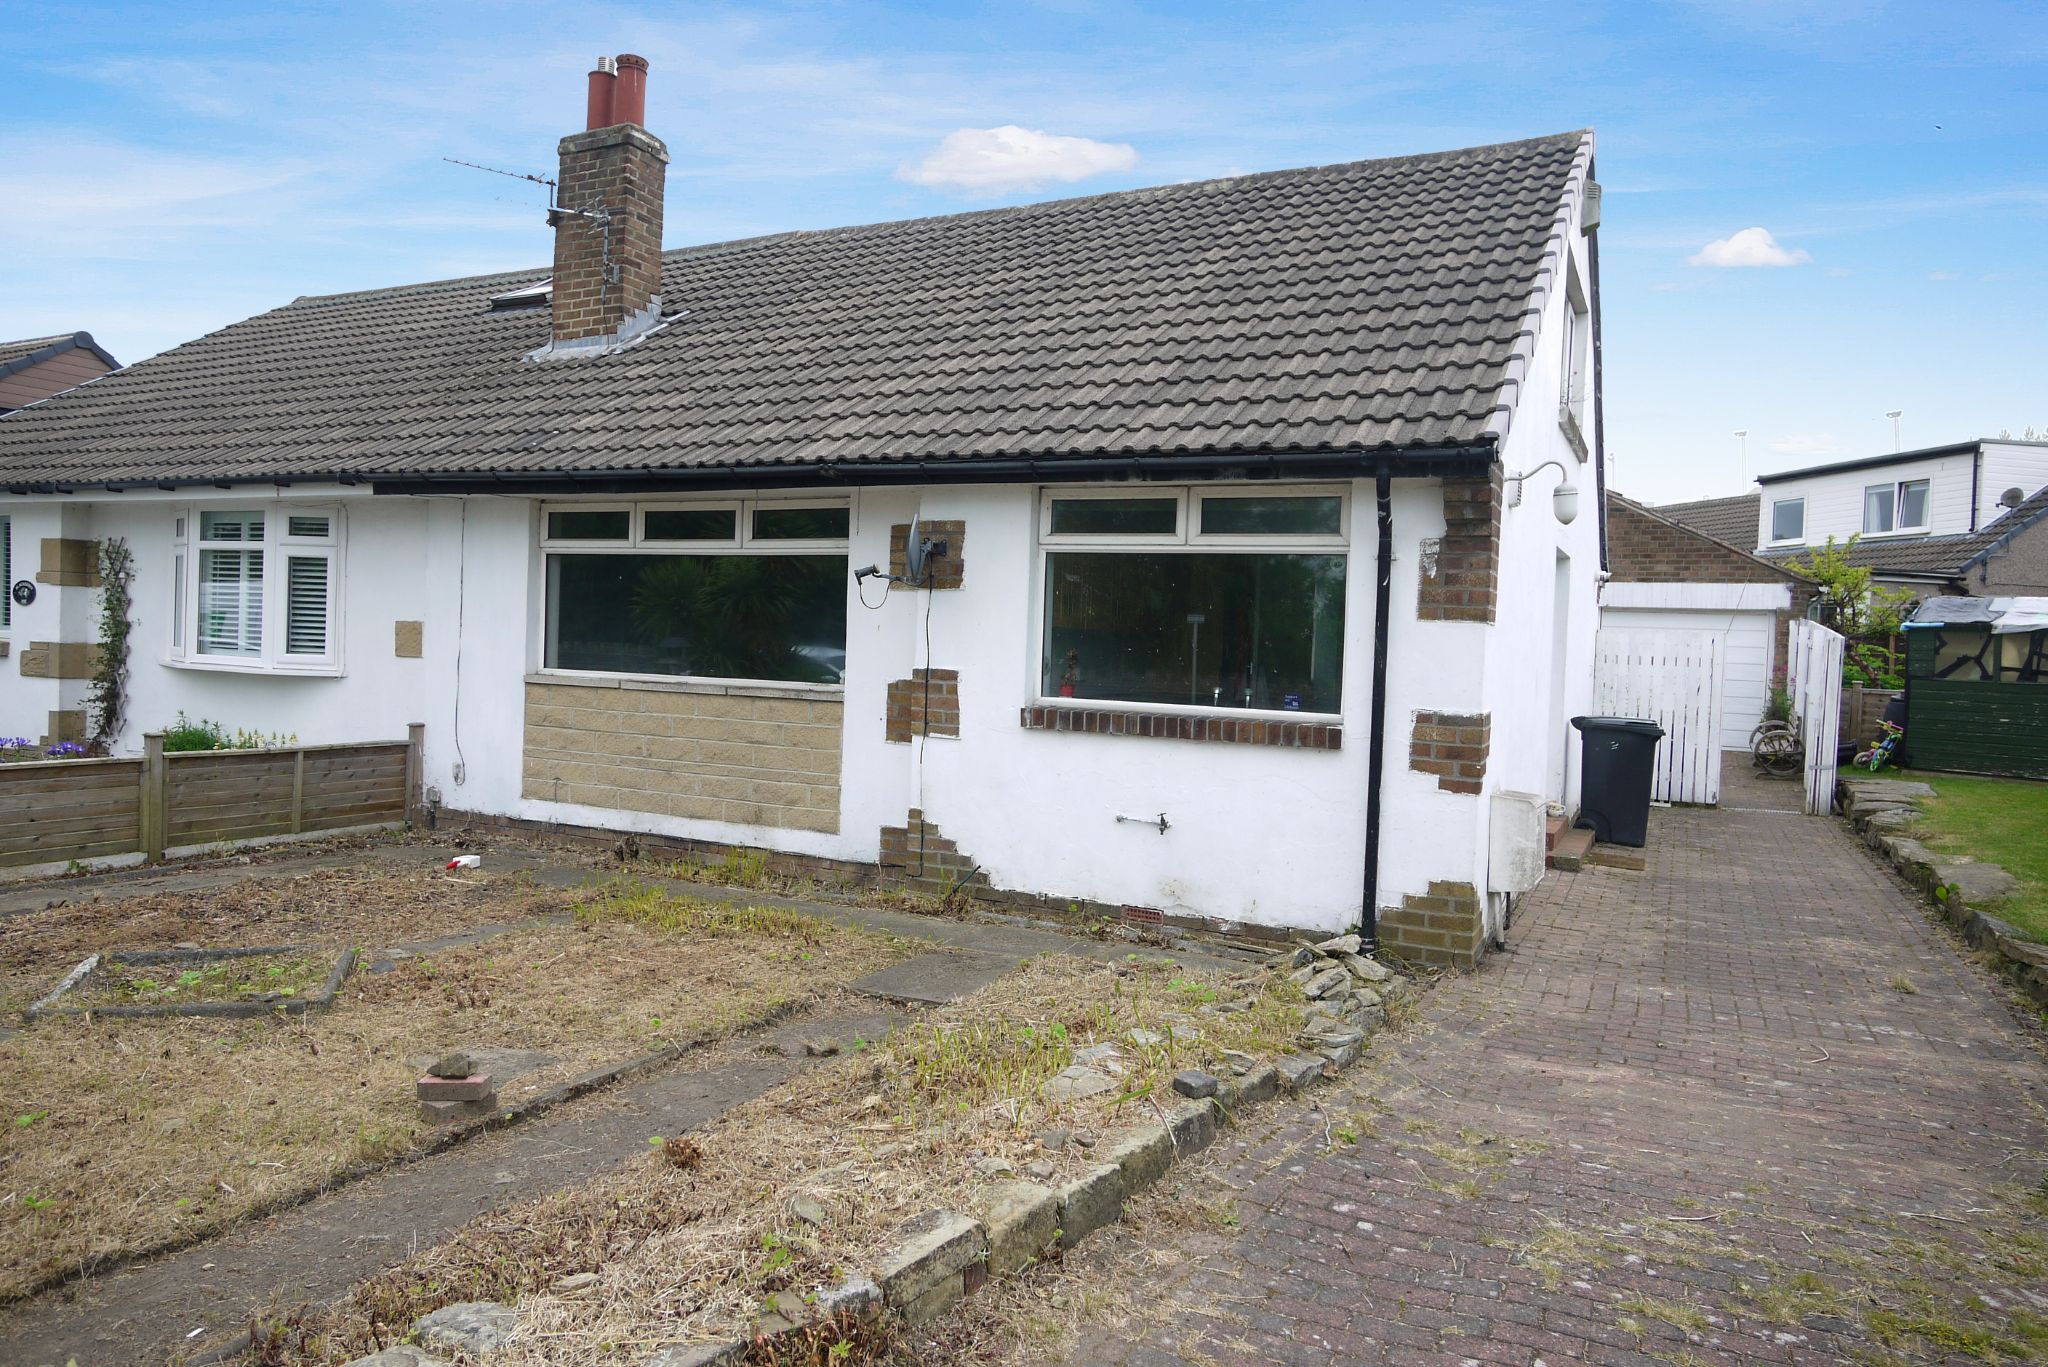 2 bedroom semi-detached bungalow For Sale in Brighouse - Main.